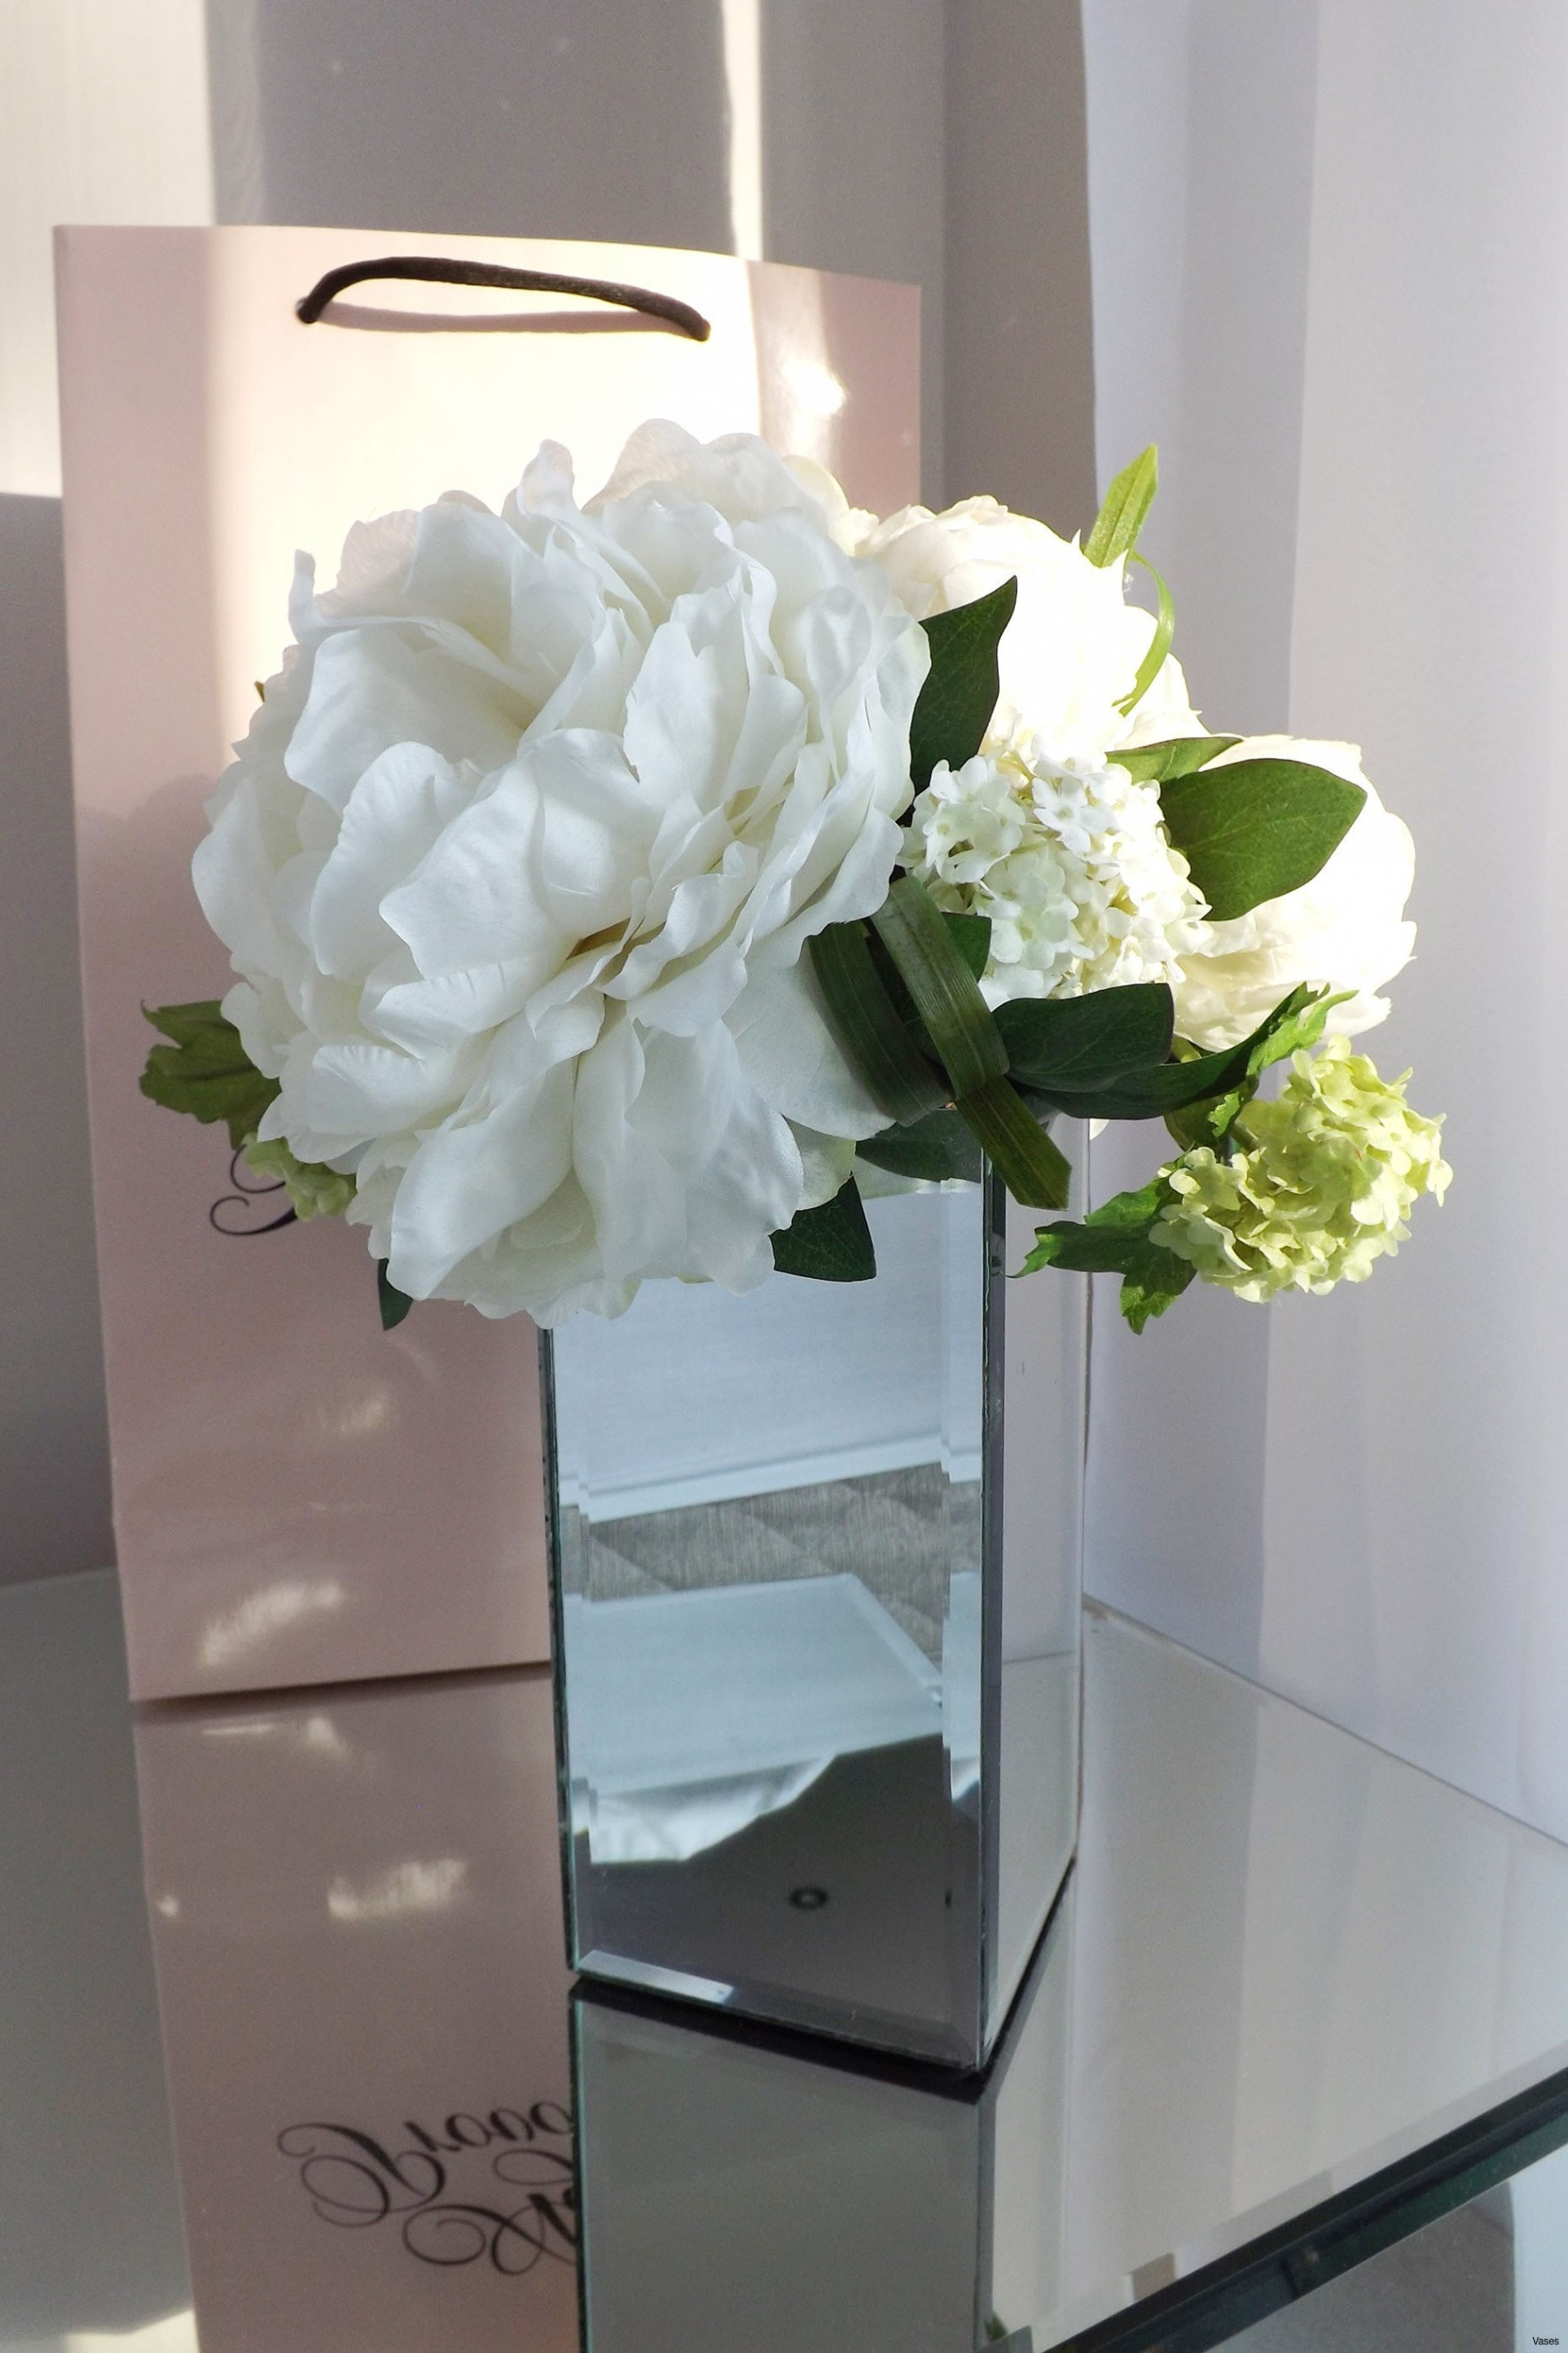 decorative plastic vases of h vases for flower arrangements i 0d dry inspiration picture design throughout image de metal vases 3h mirrored mosaic vase votivei 0d hobby lobby canada to